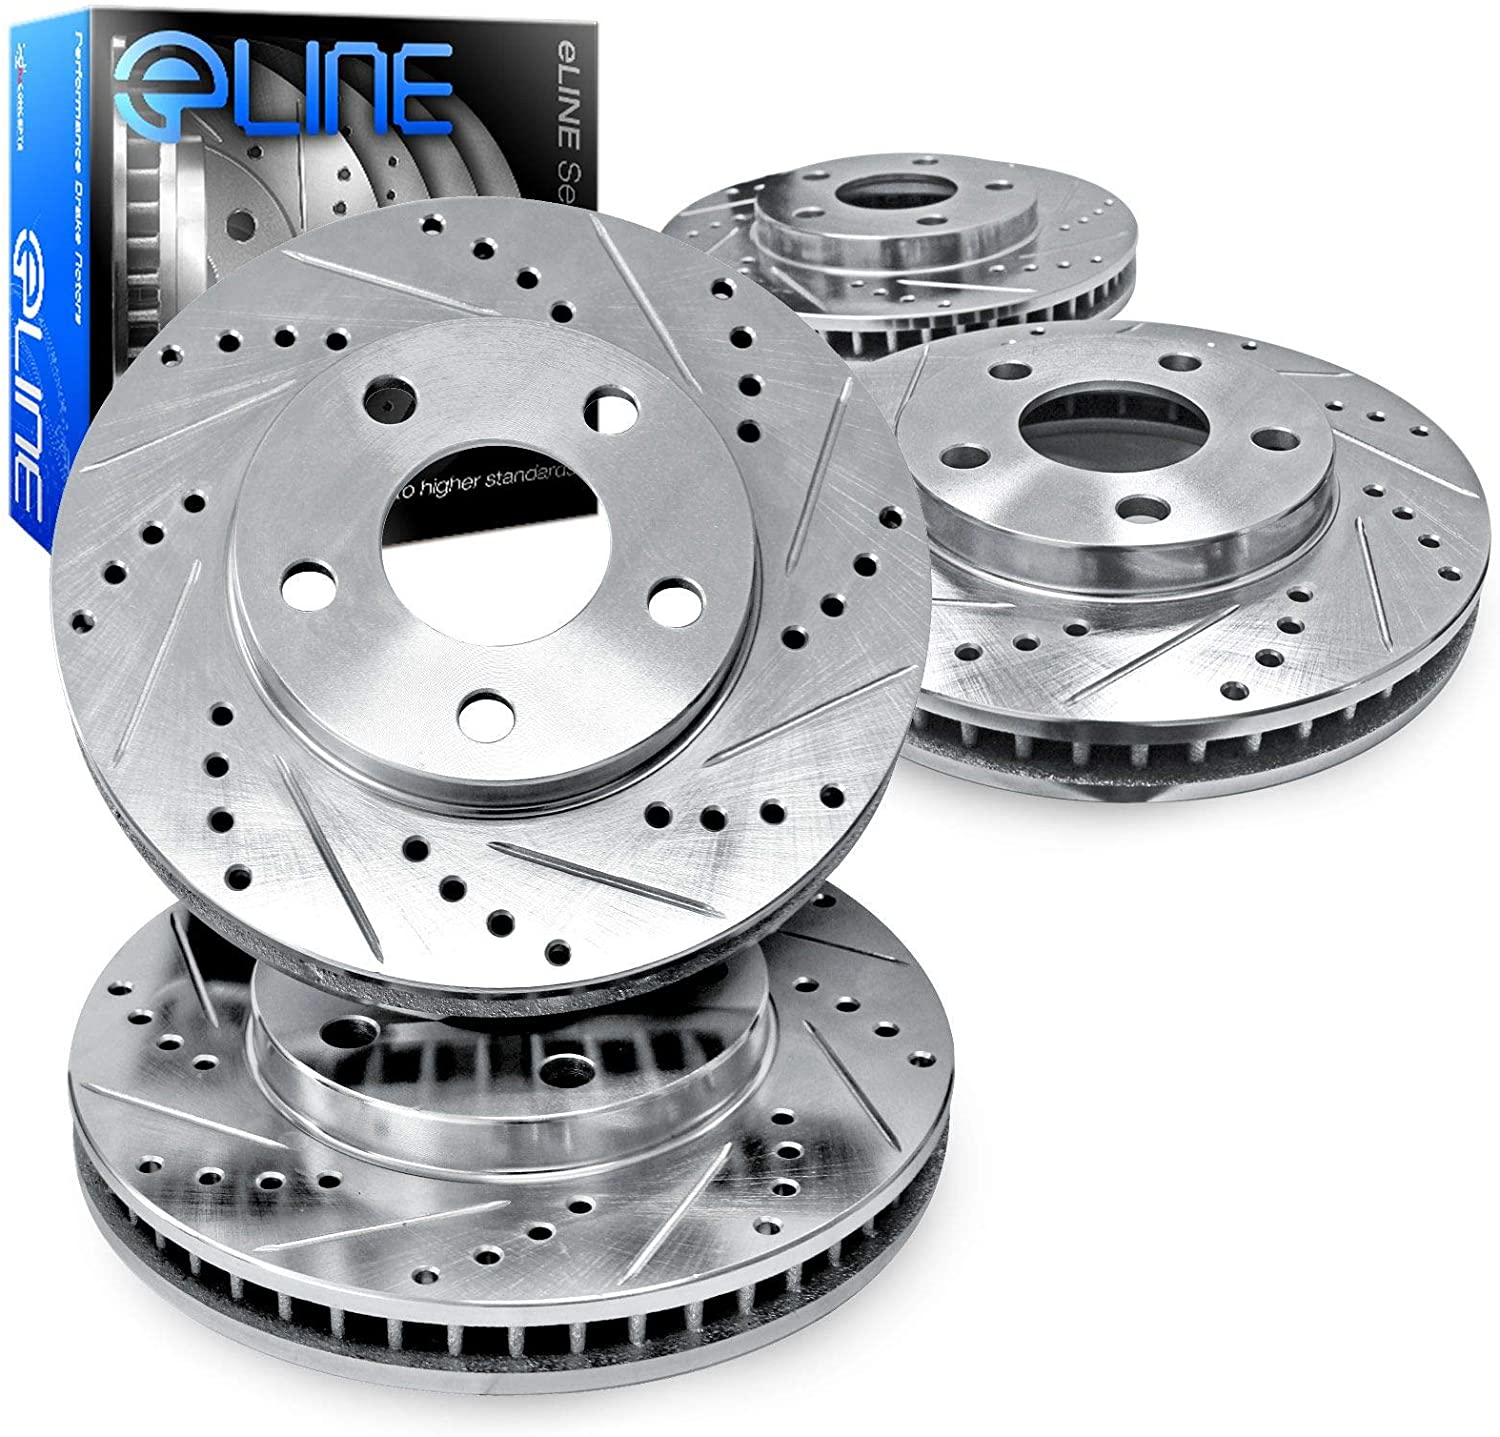 For 1984-1988 Nissan 300ZX,200SX R1 Concepts eLine Front Rear Brake Rotors Kit